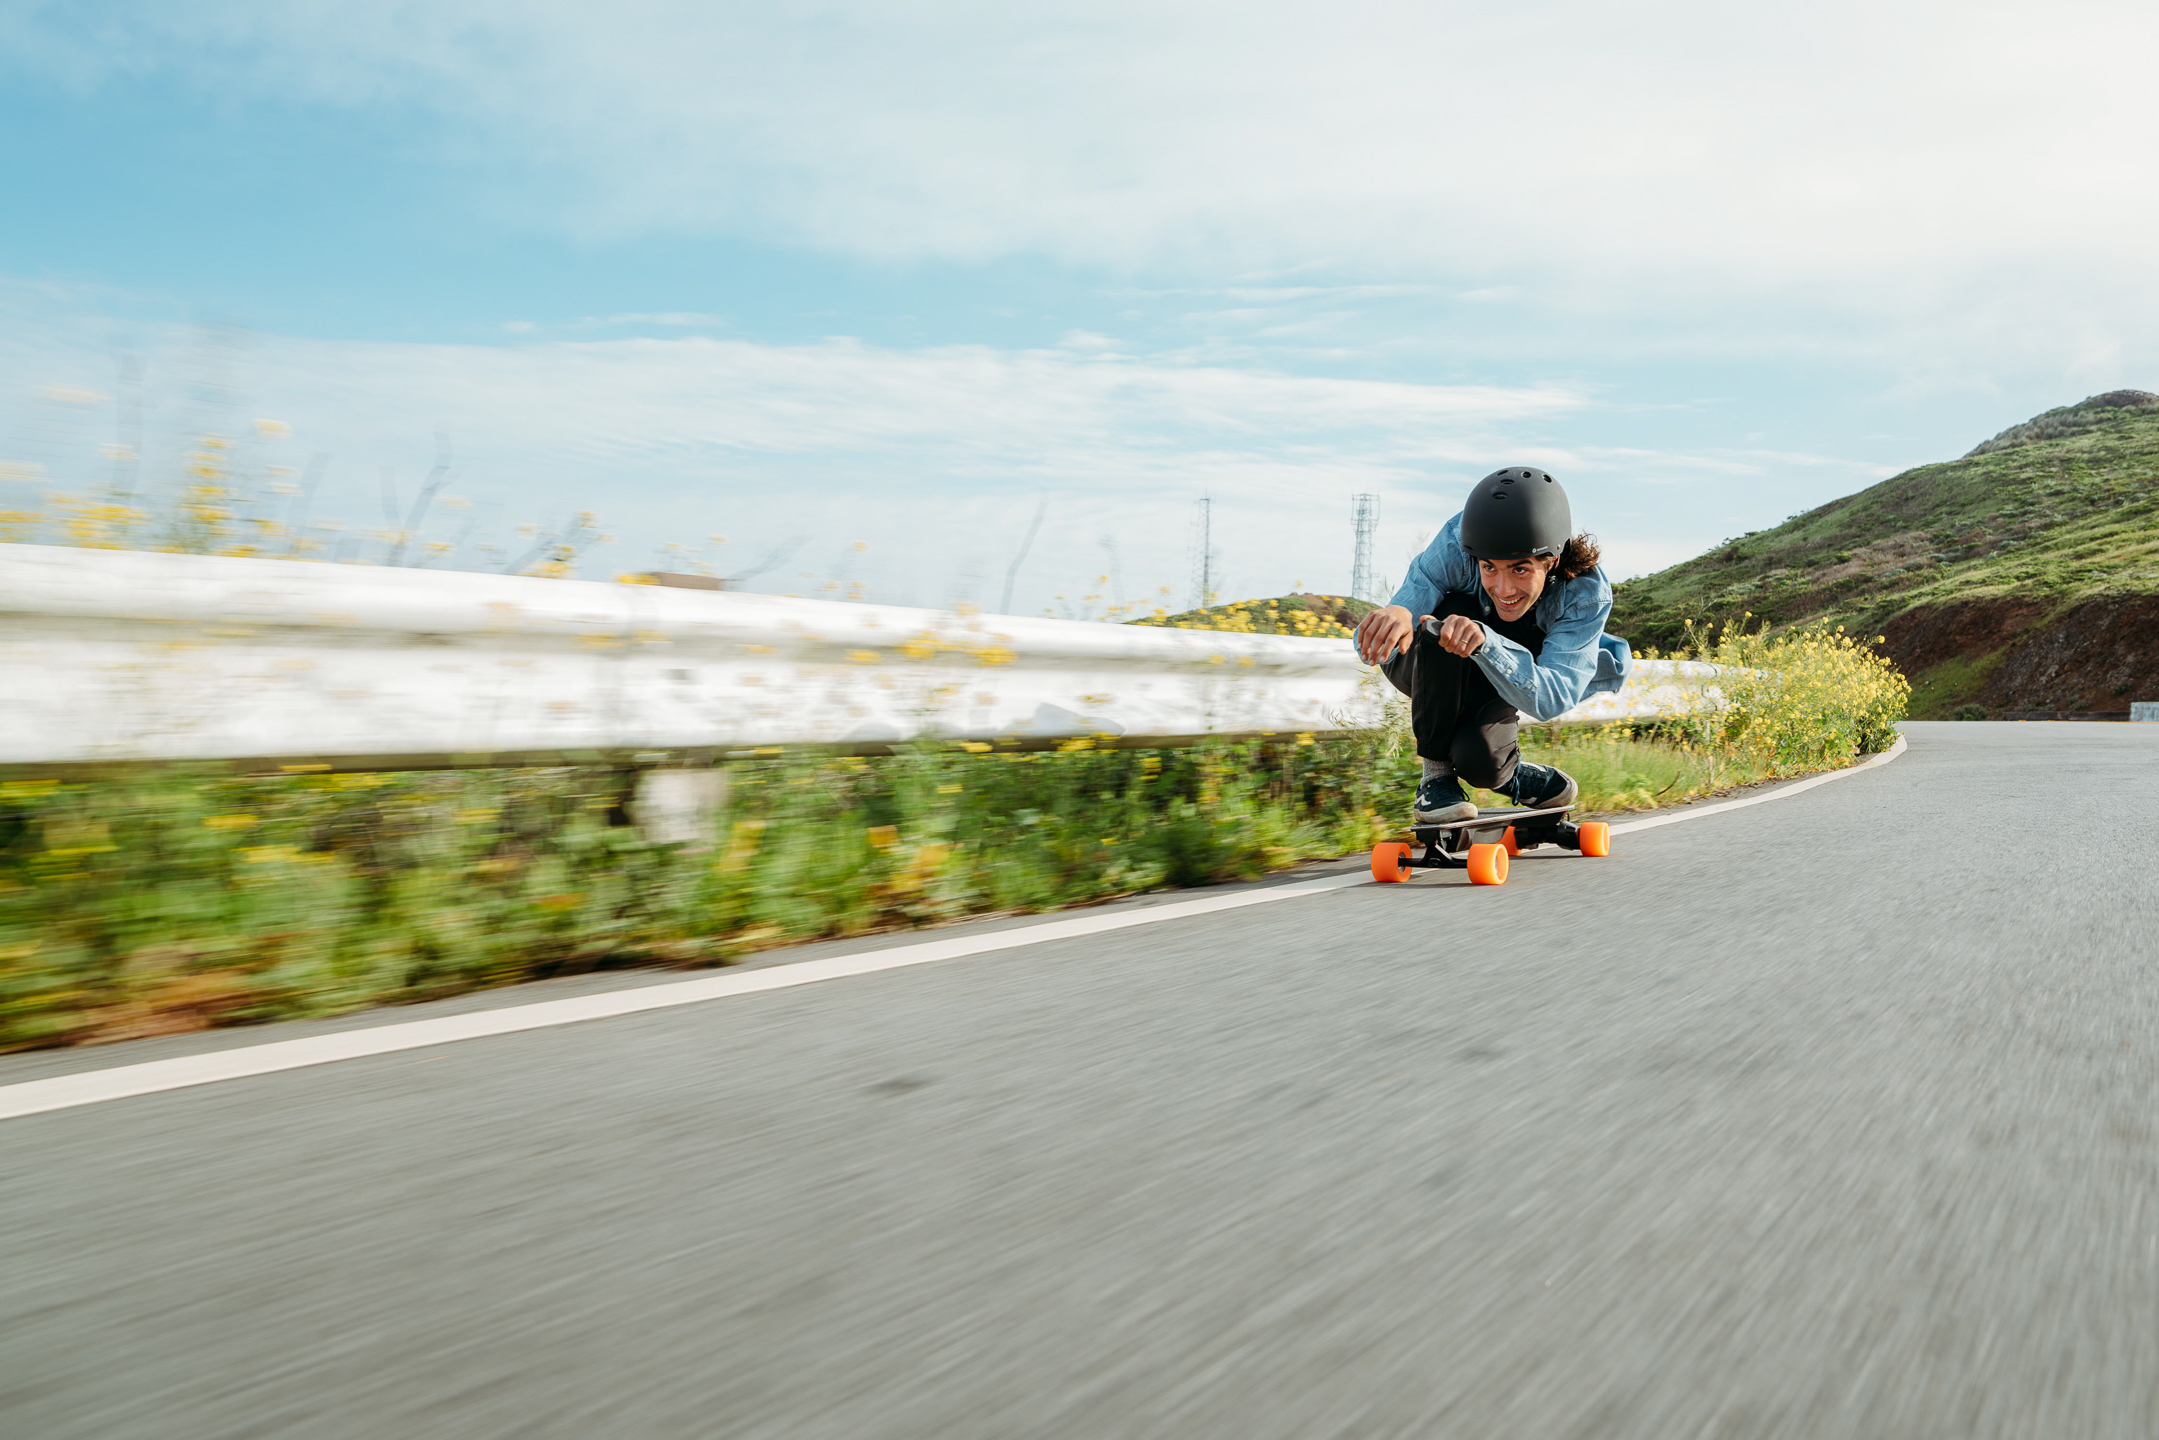 Boosted S First Short Electric Skateboard Starts At 749